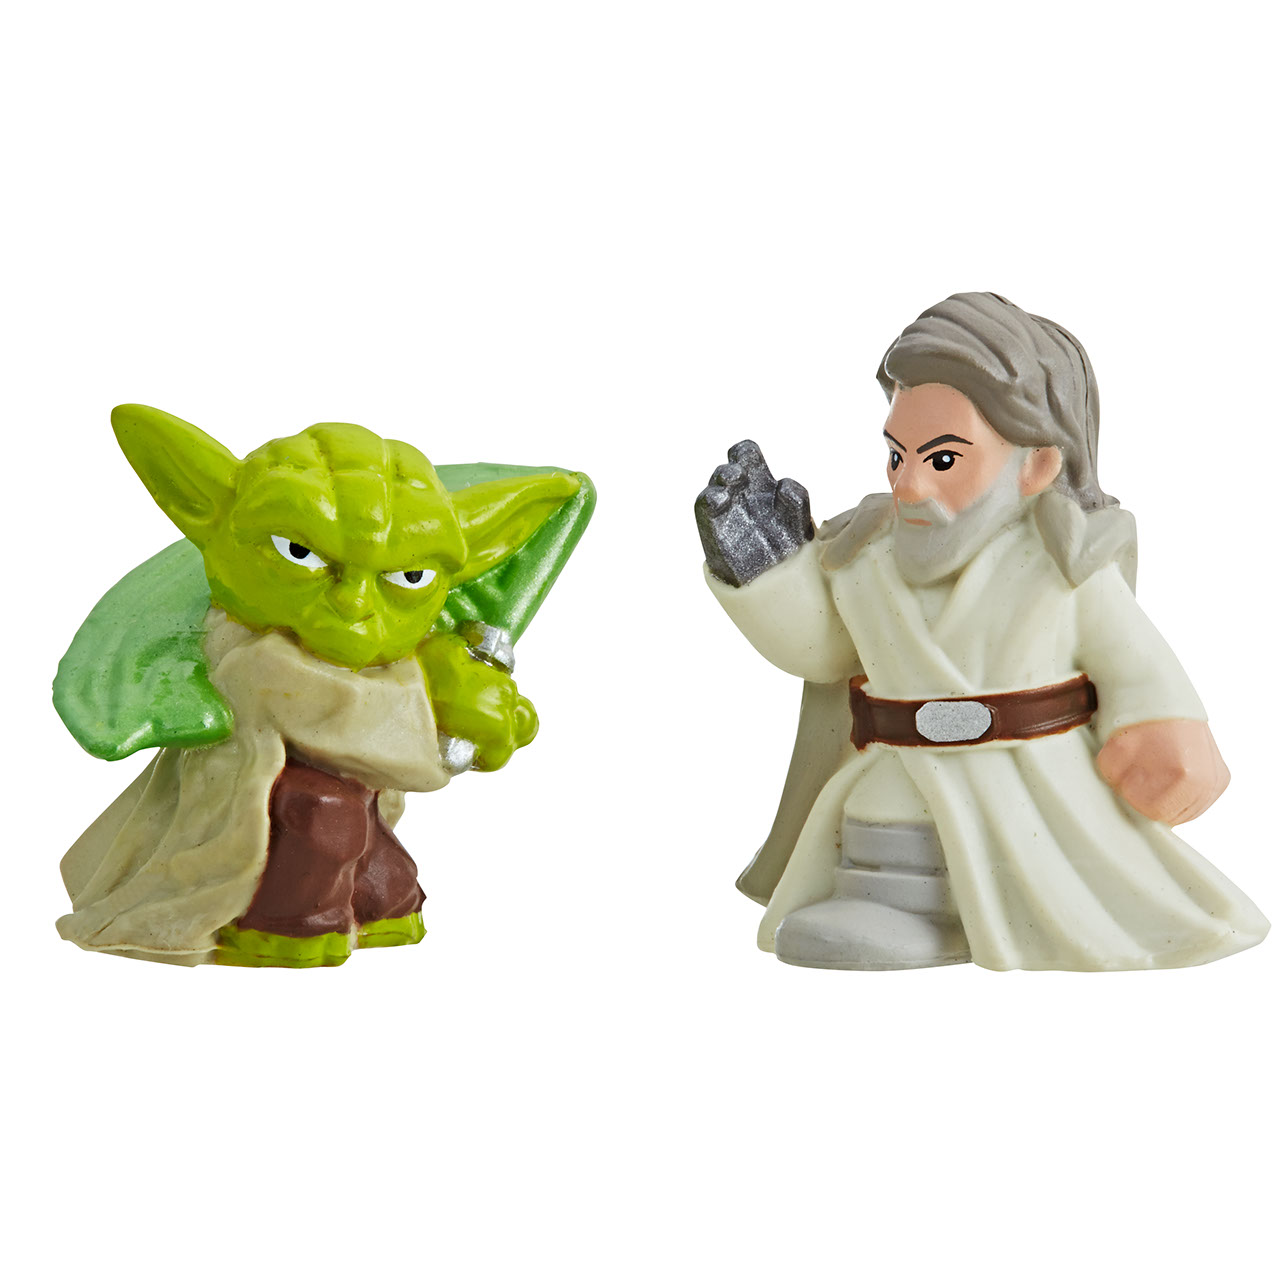 Episode 8 Micro Force Blind bags